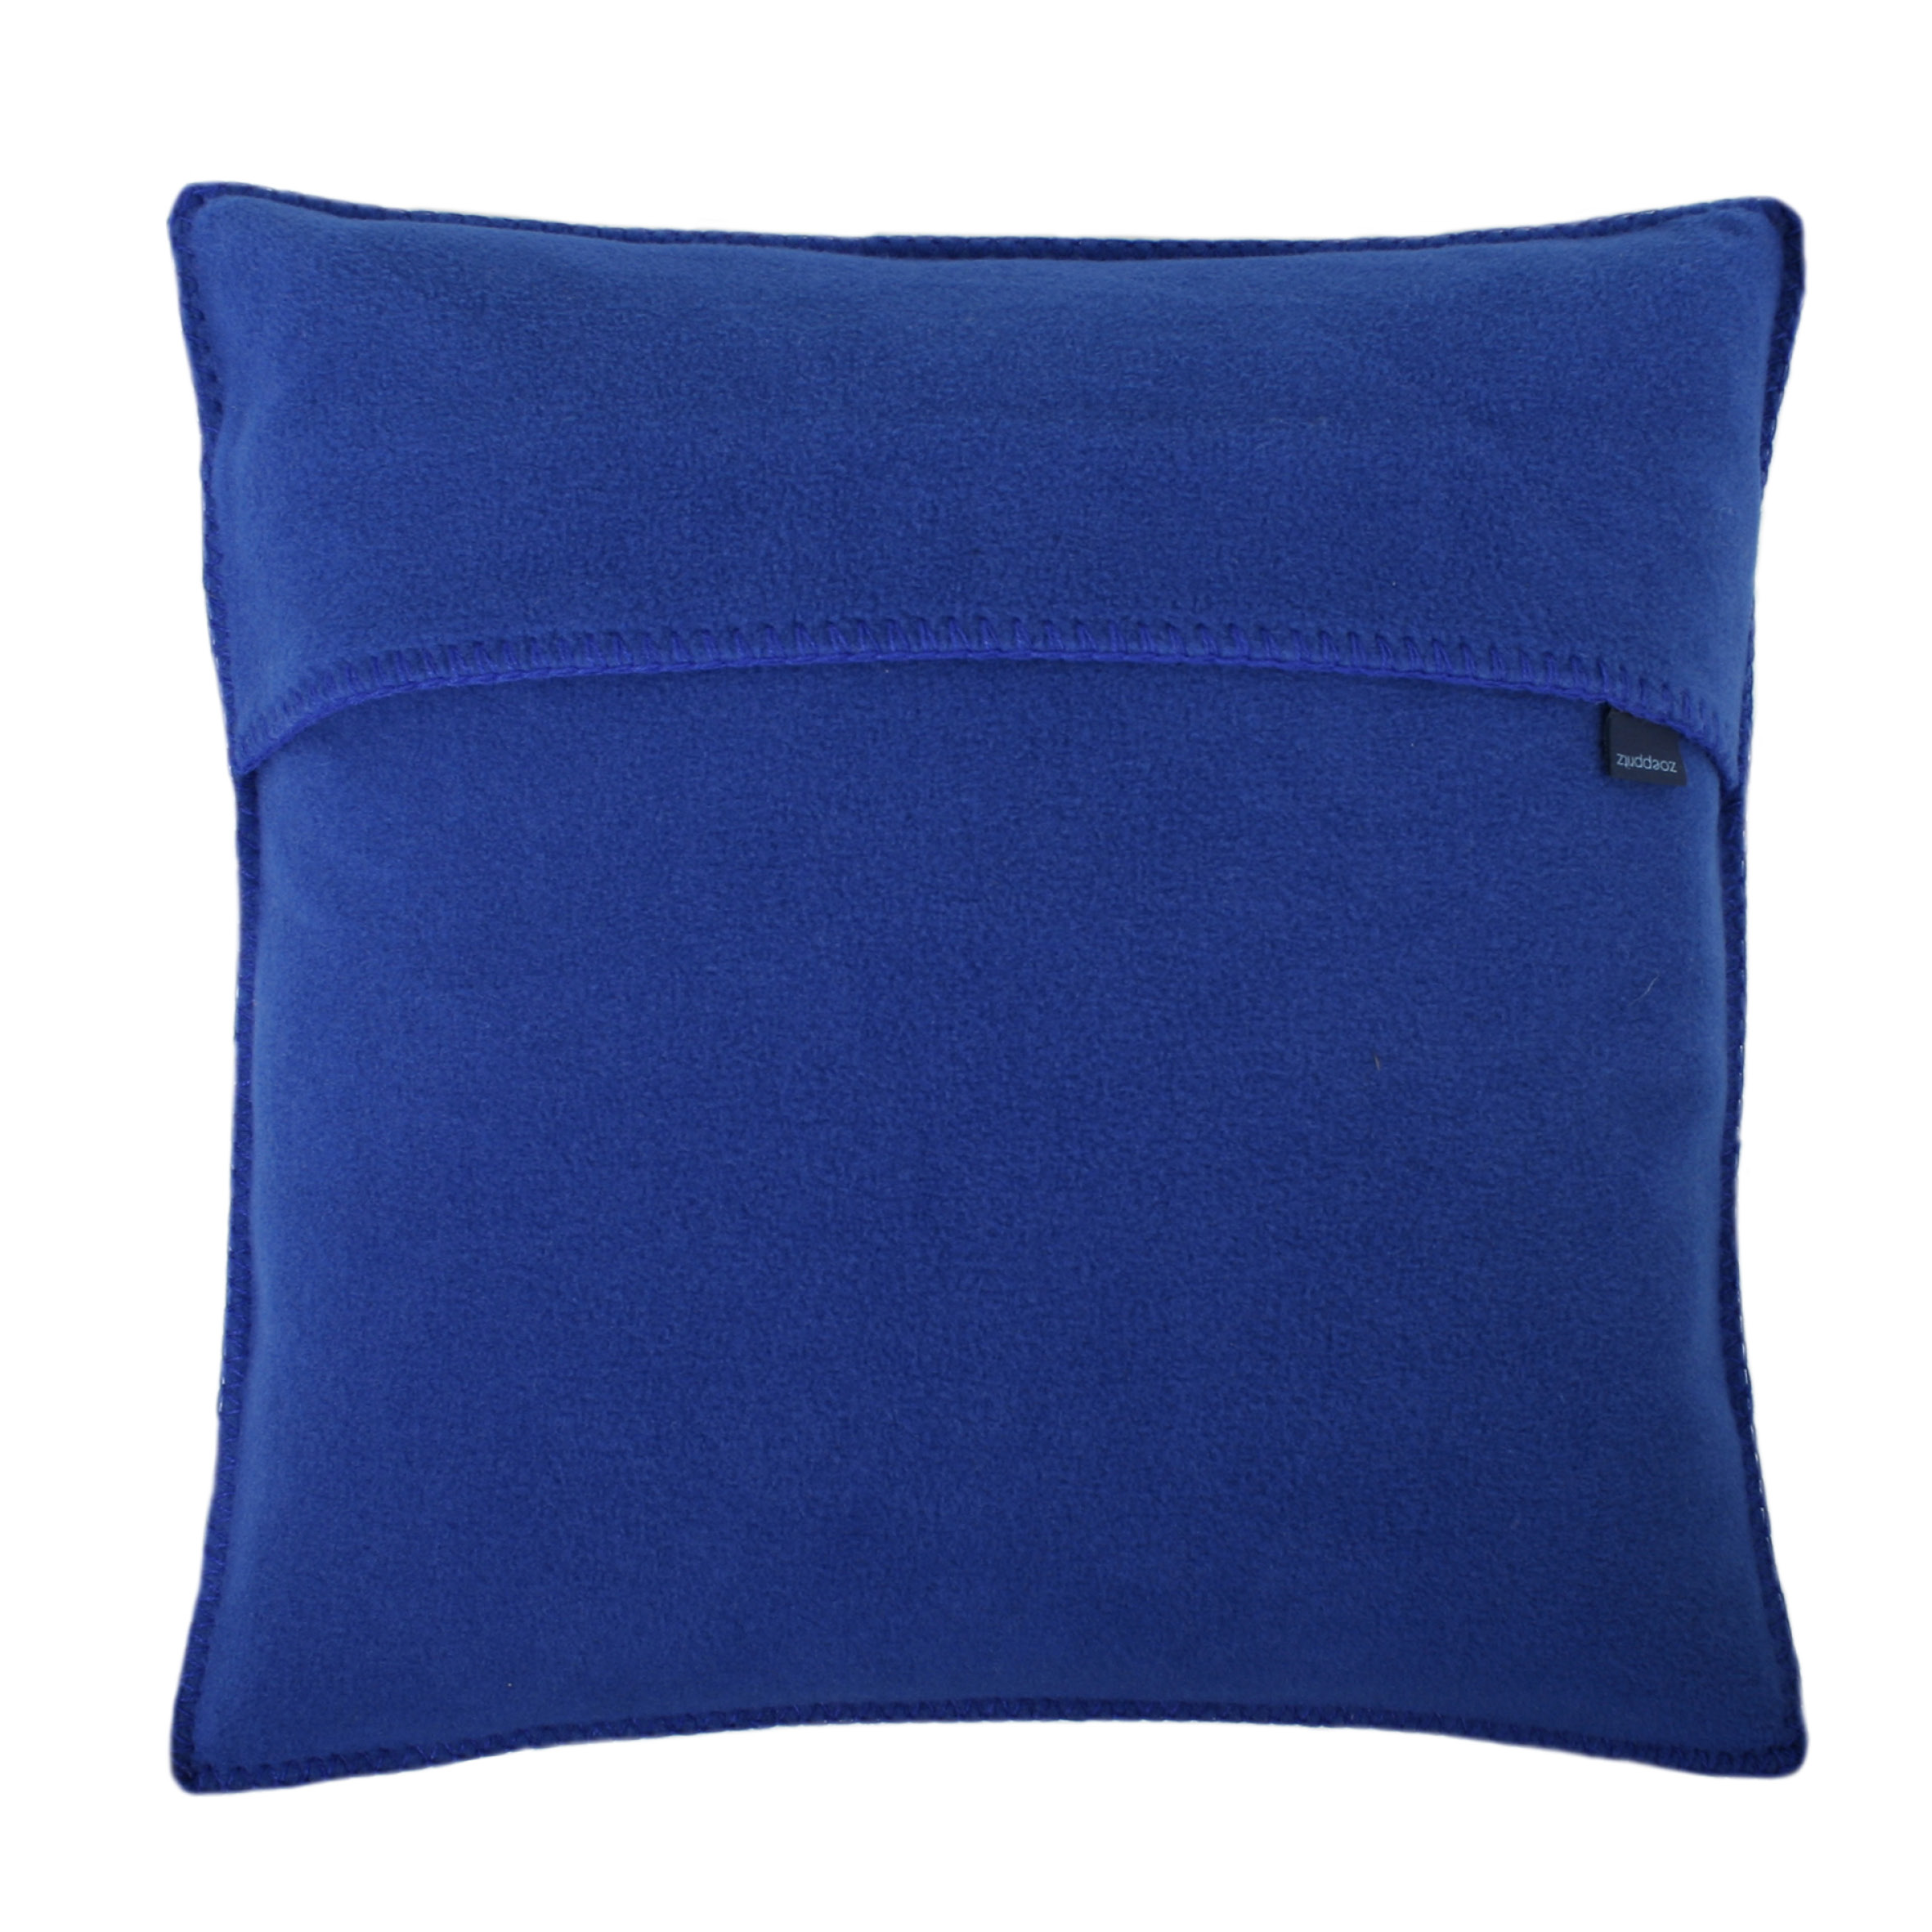 zoeppritz soft fleece kissen 40x40 royalblau zoeppritz. Black Bedroom Furniture Sets. Home Design Ideas